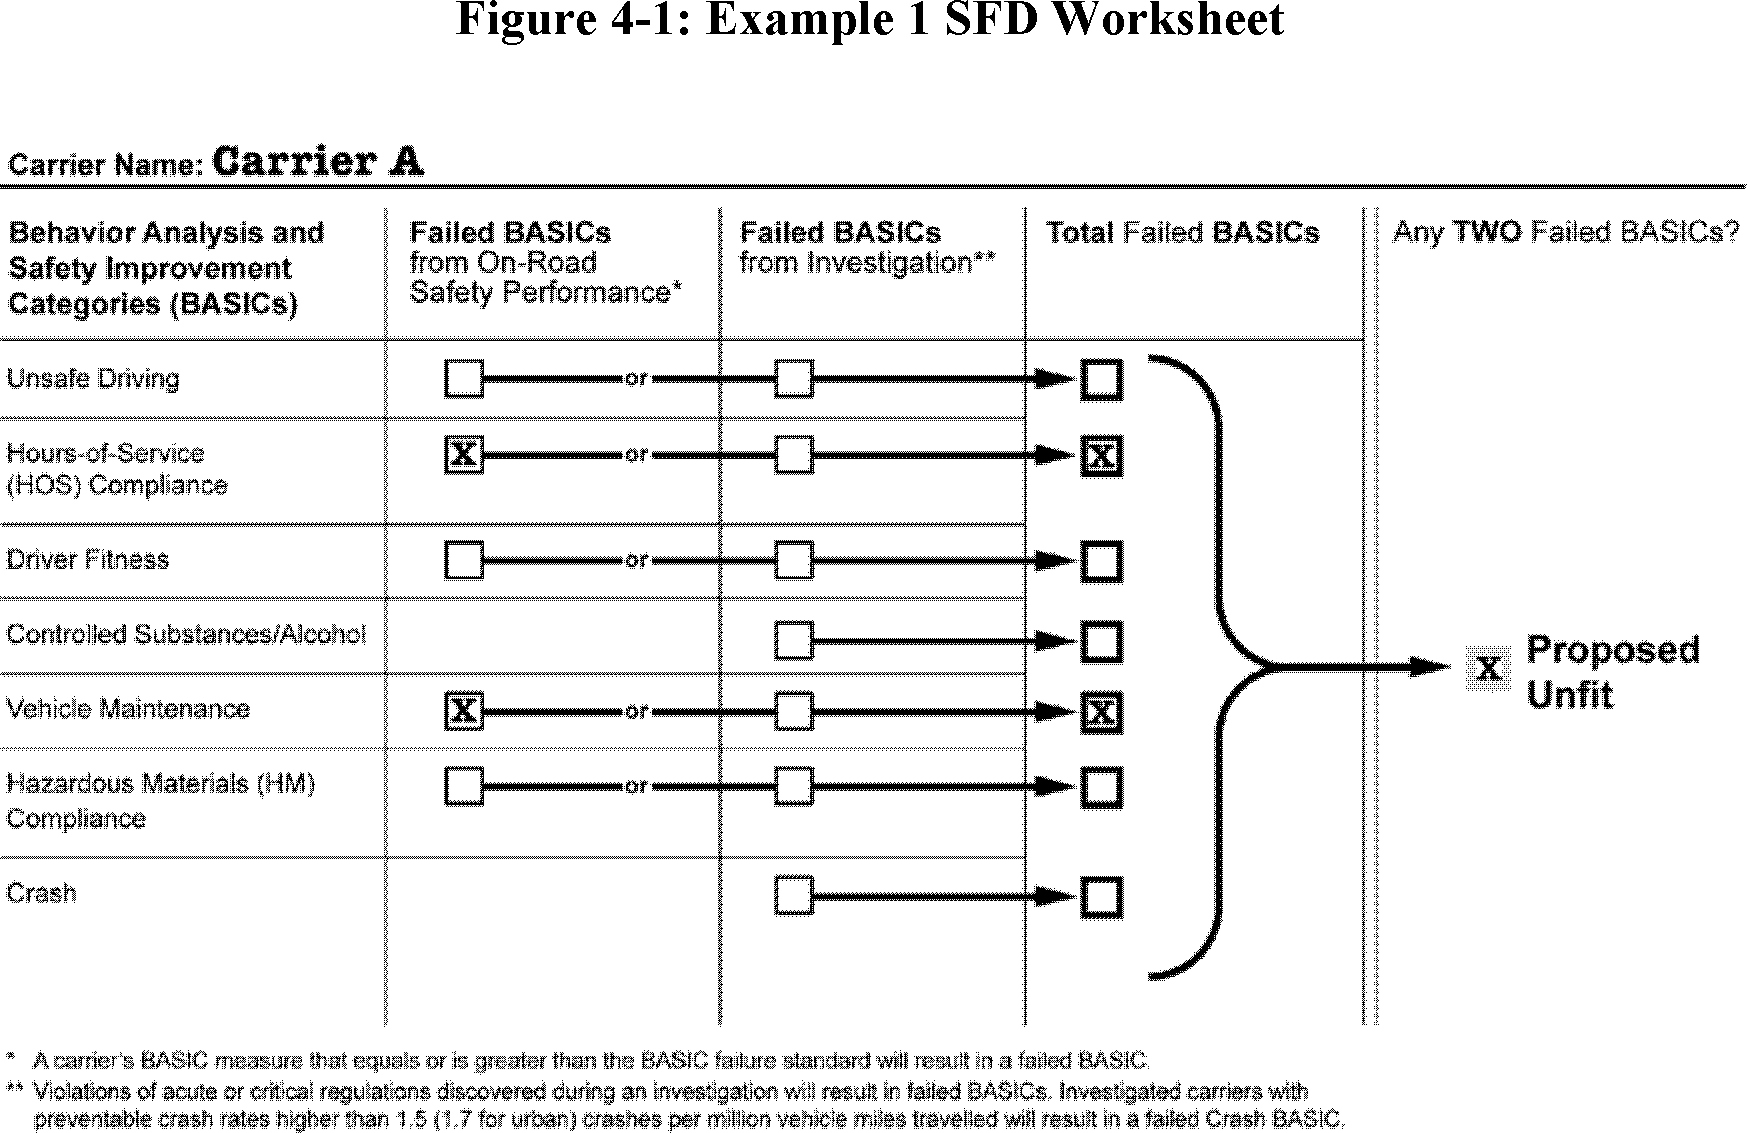 4.2.2 Example 2—Proposed Unfit Sfd Based On Inspection Data And An  Investigation: In The Second Example (See Figure 4-2 Of This Appendix),  Carrier B Had